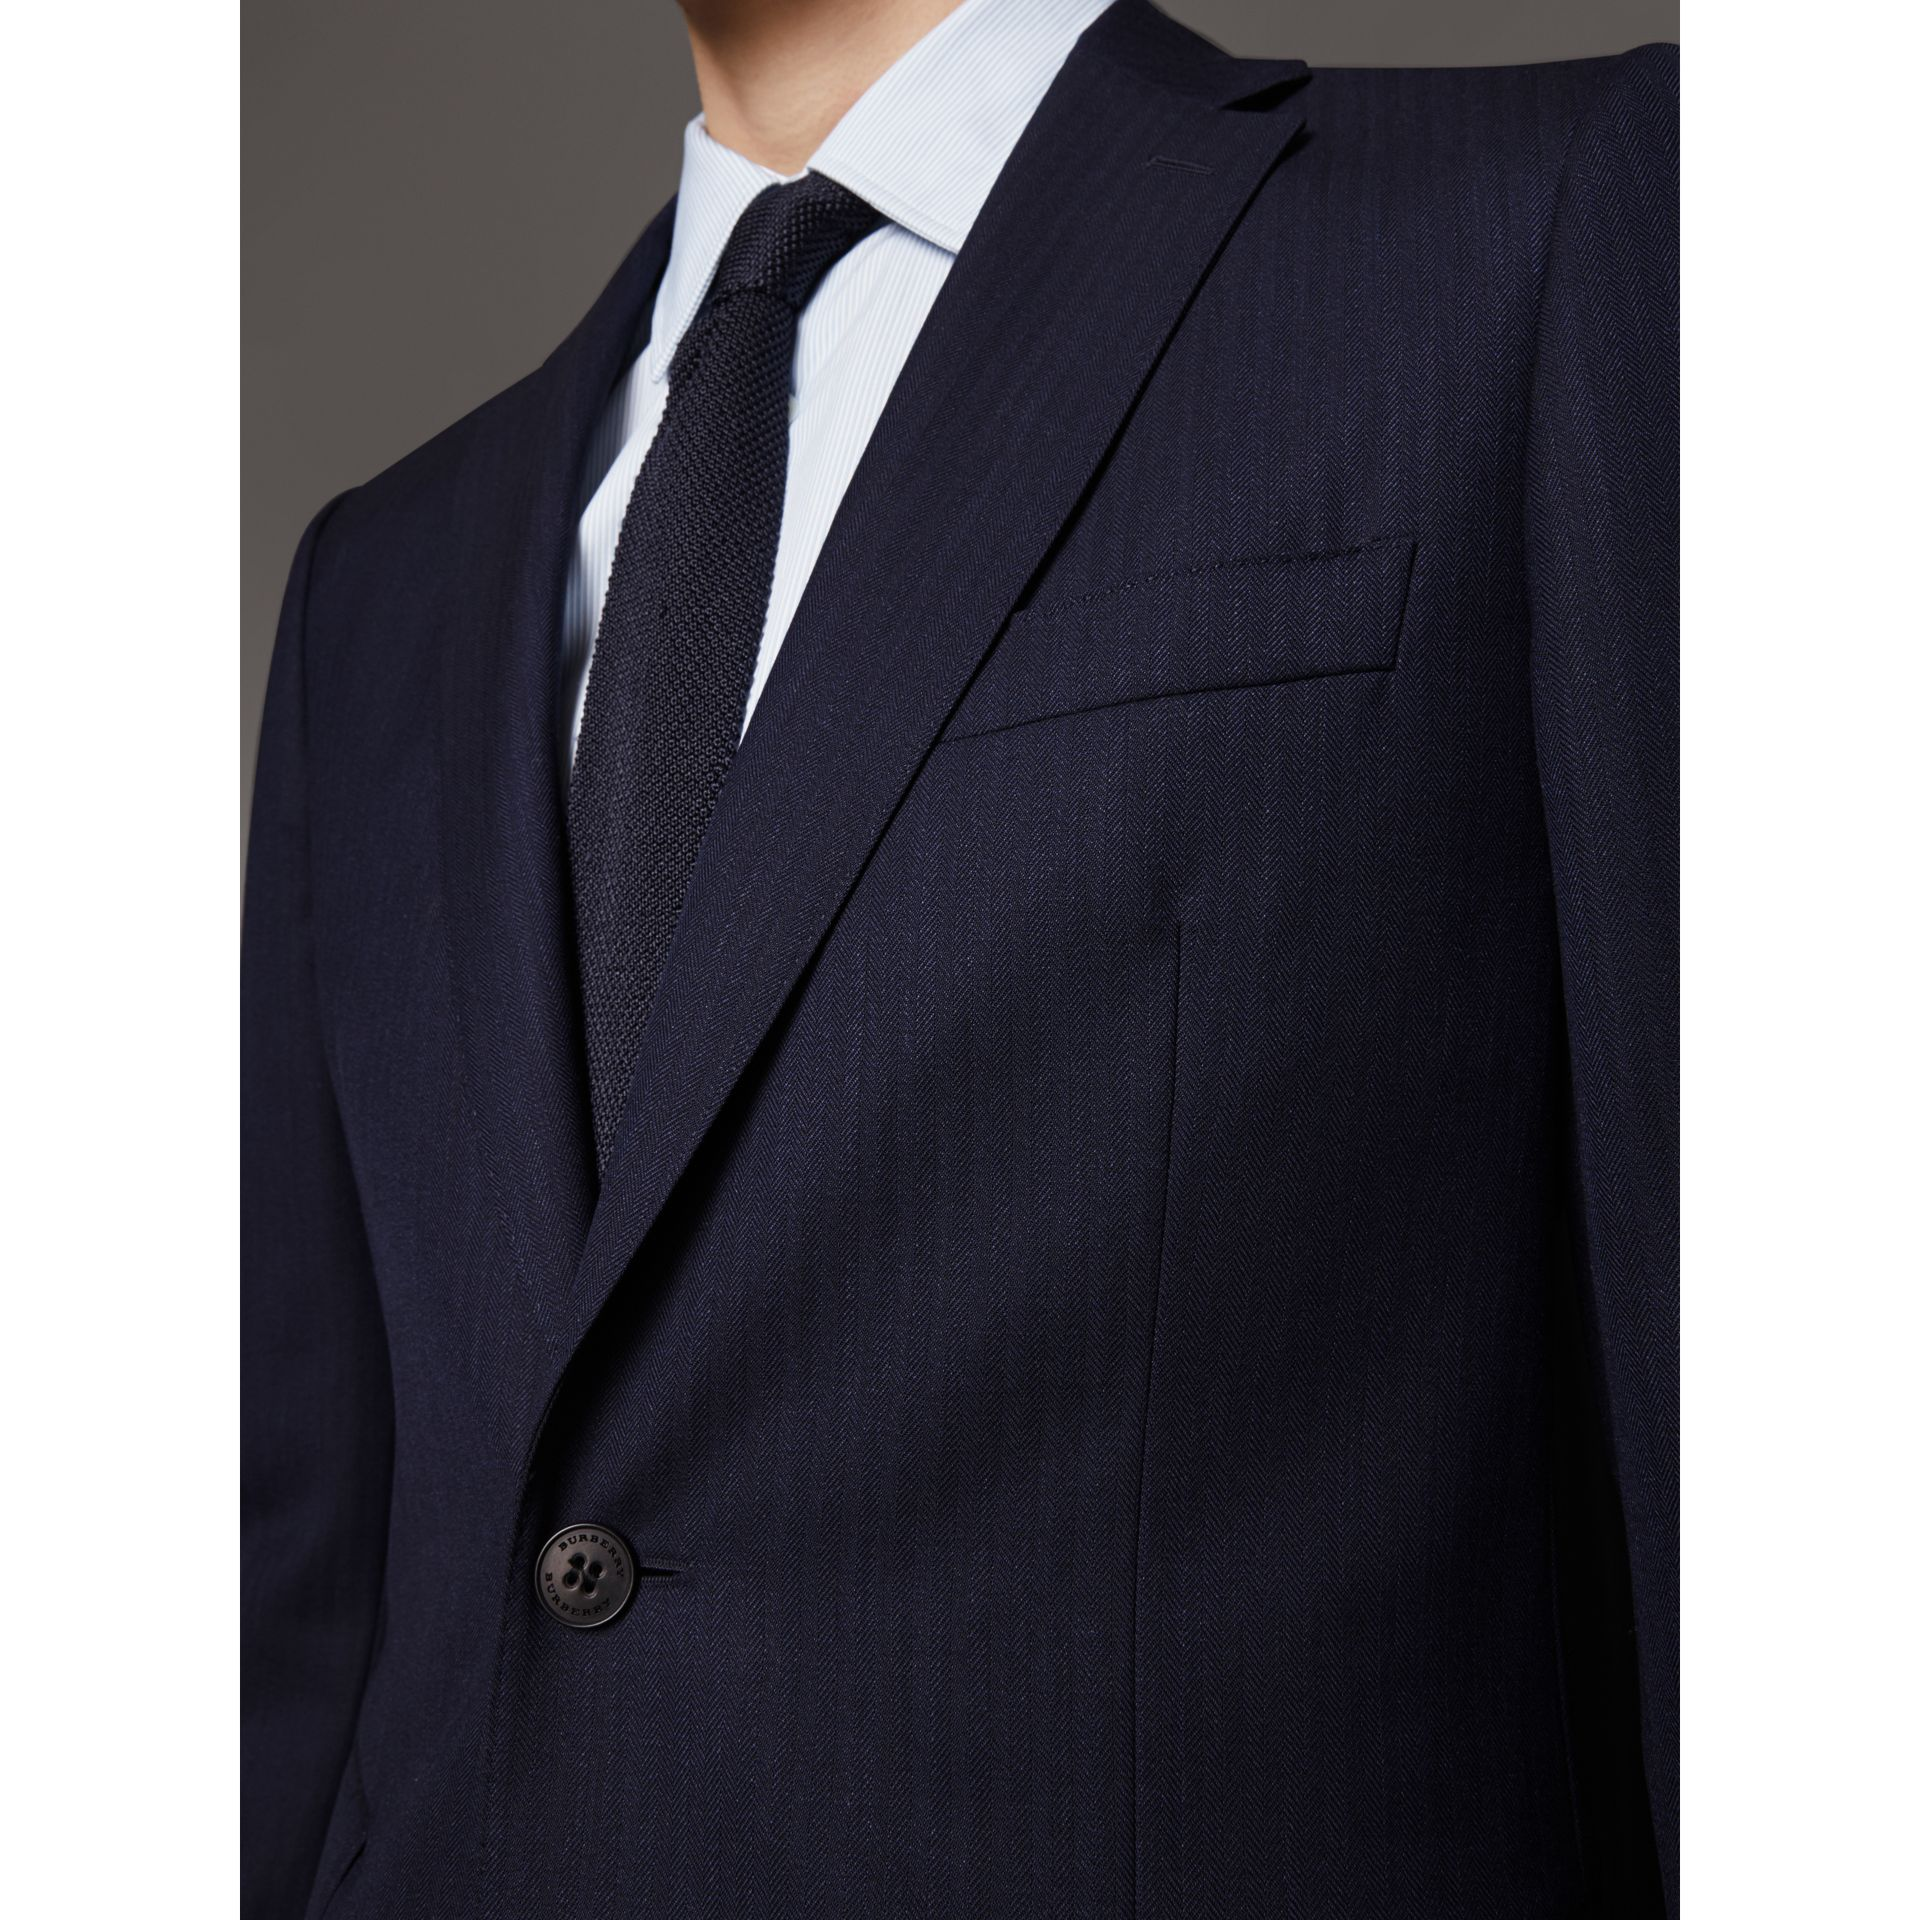 Soho Fit Herringbone Wool Suit in Navy - Men | Burberry United States - gallery image 1